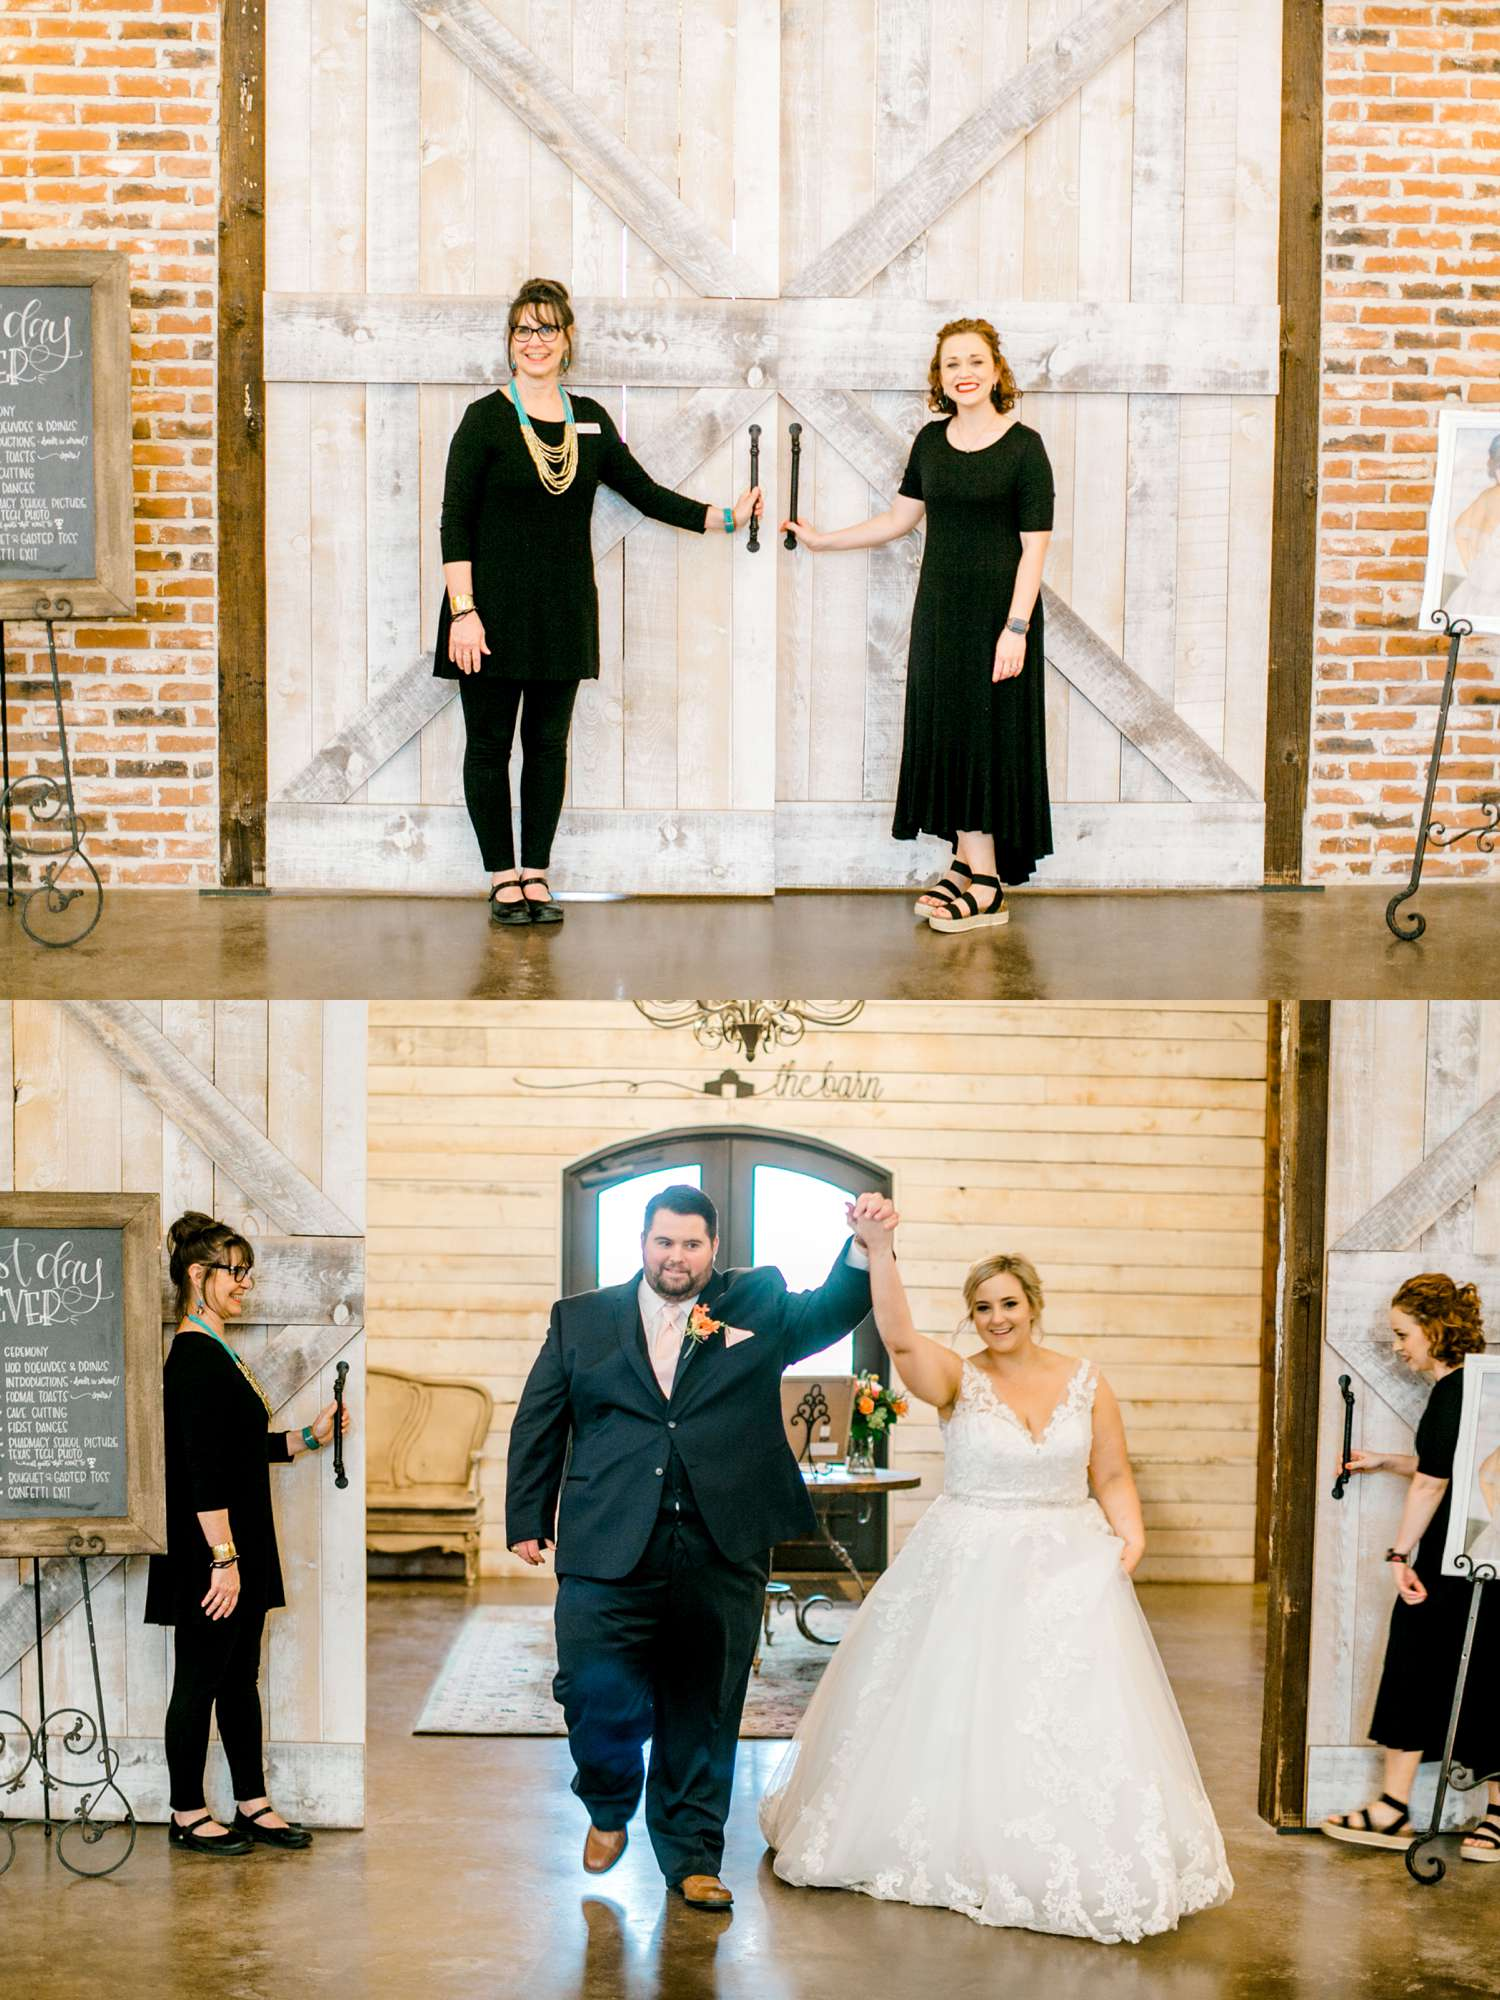 TIMMI+JORDAN_IRVINE_EBERLEY_BROOKS_EVENTS_ALLEEJ_WEDDINGS_0098.jpg